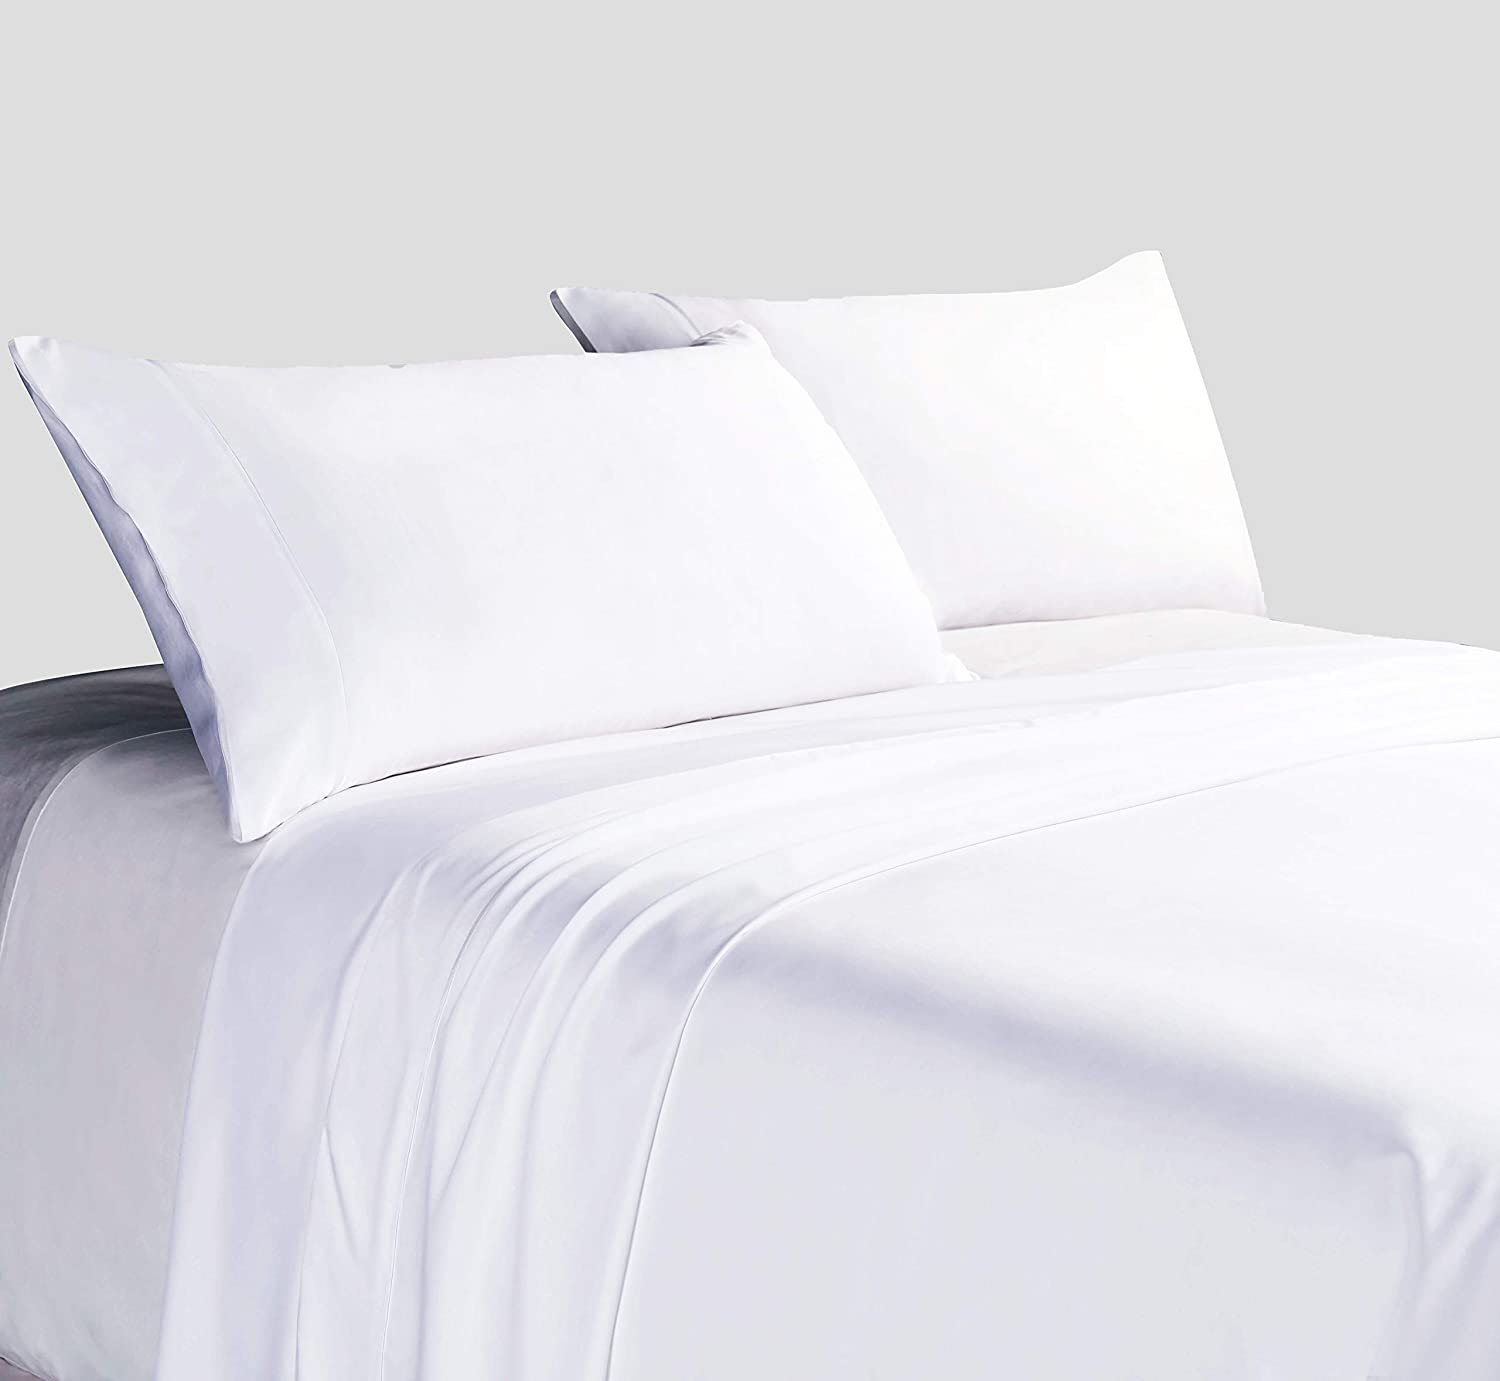 The Eucalypso Organic Eucalyptus Sheets travel product recommended by Elle Liu on Lifney.